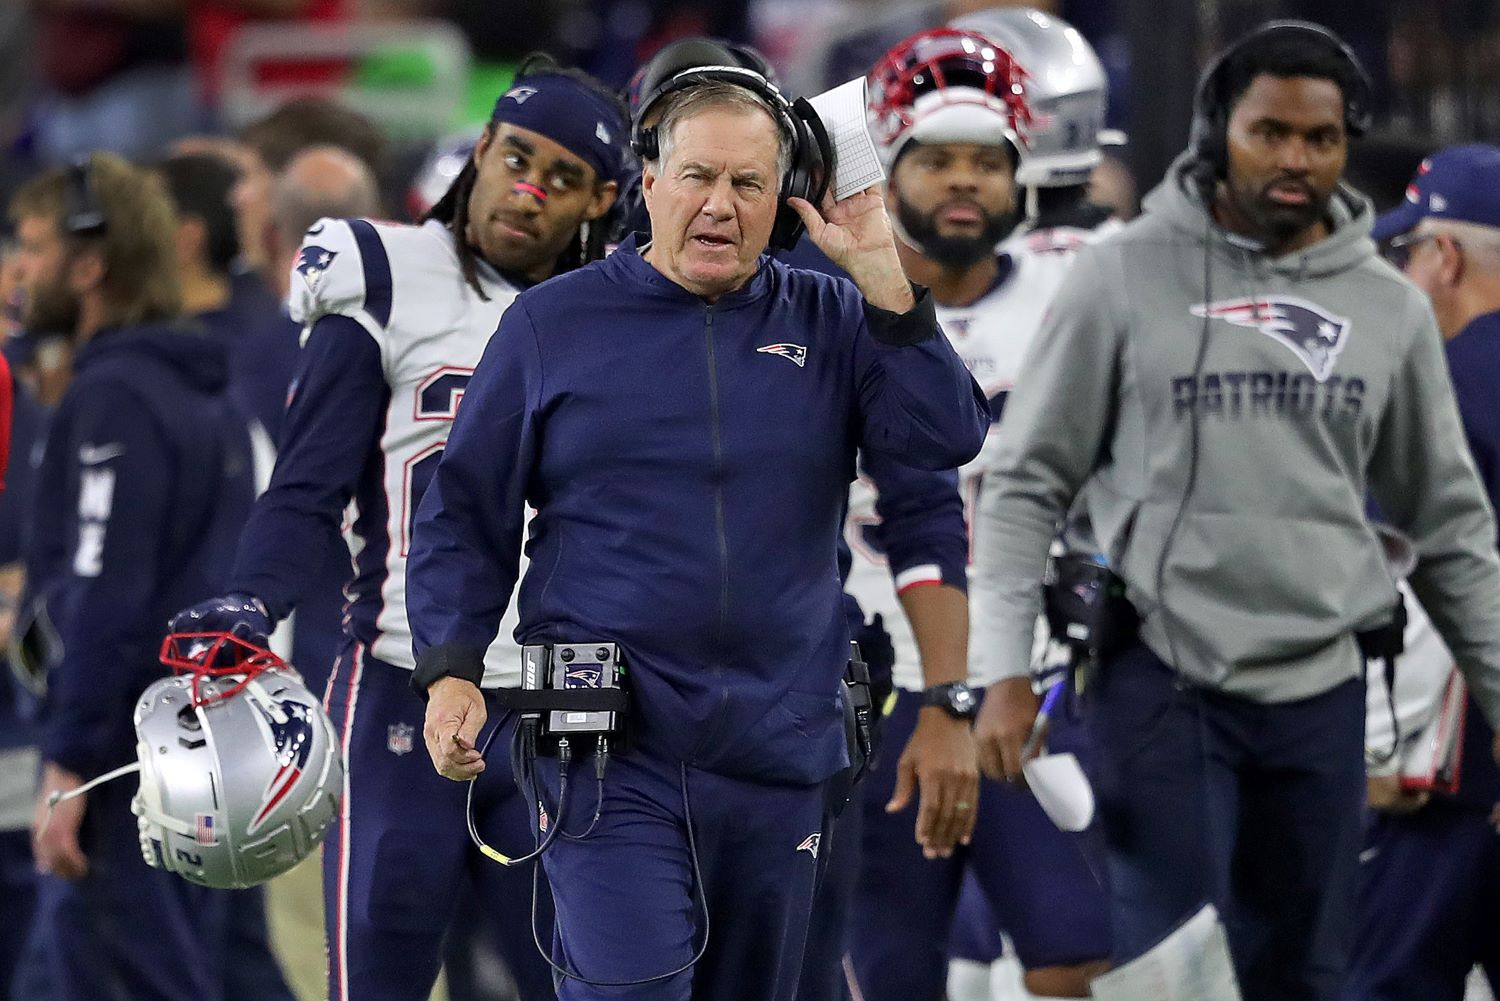 With Stephon Gilmore reportedly putting his house for sale, Bill Belichick just lost any trade leverage for the Patriots' star cornerback.